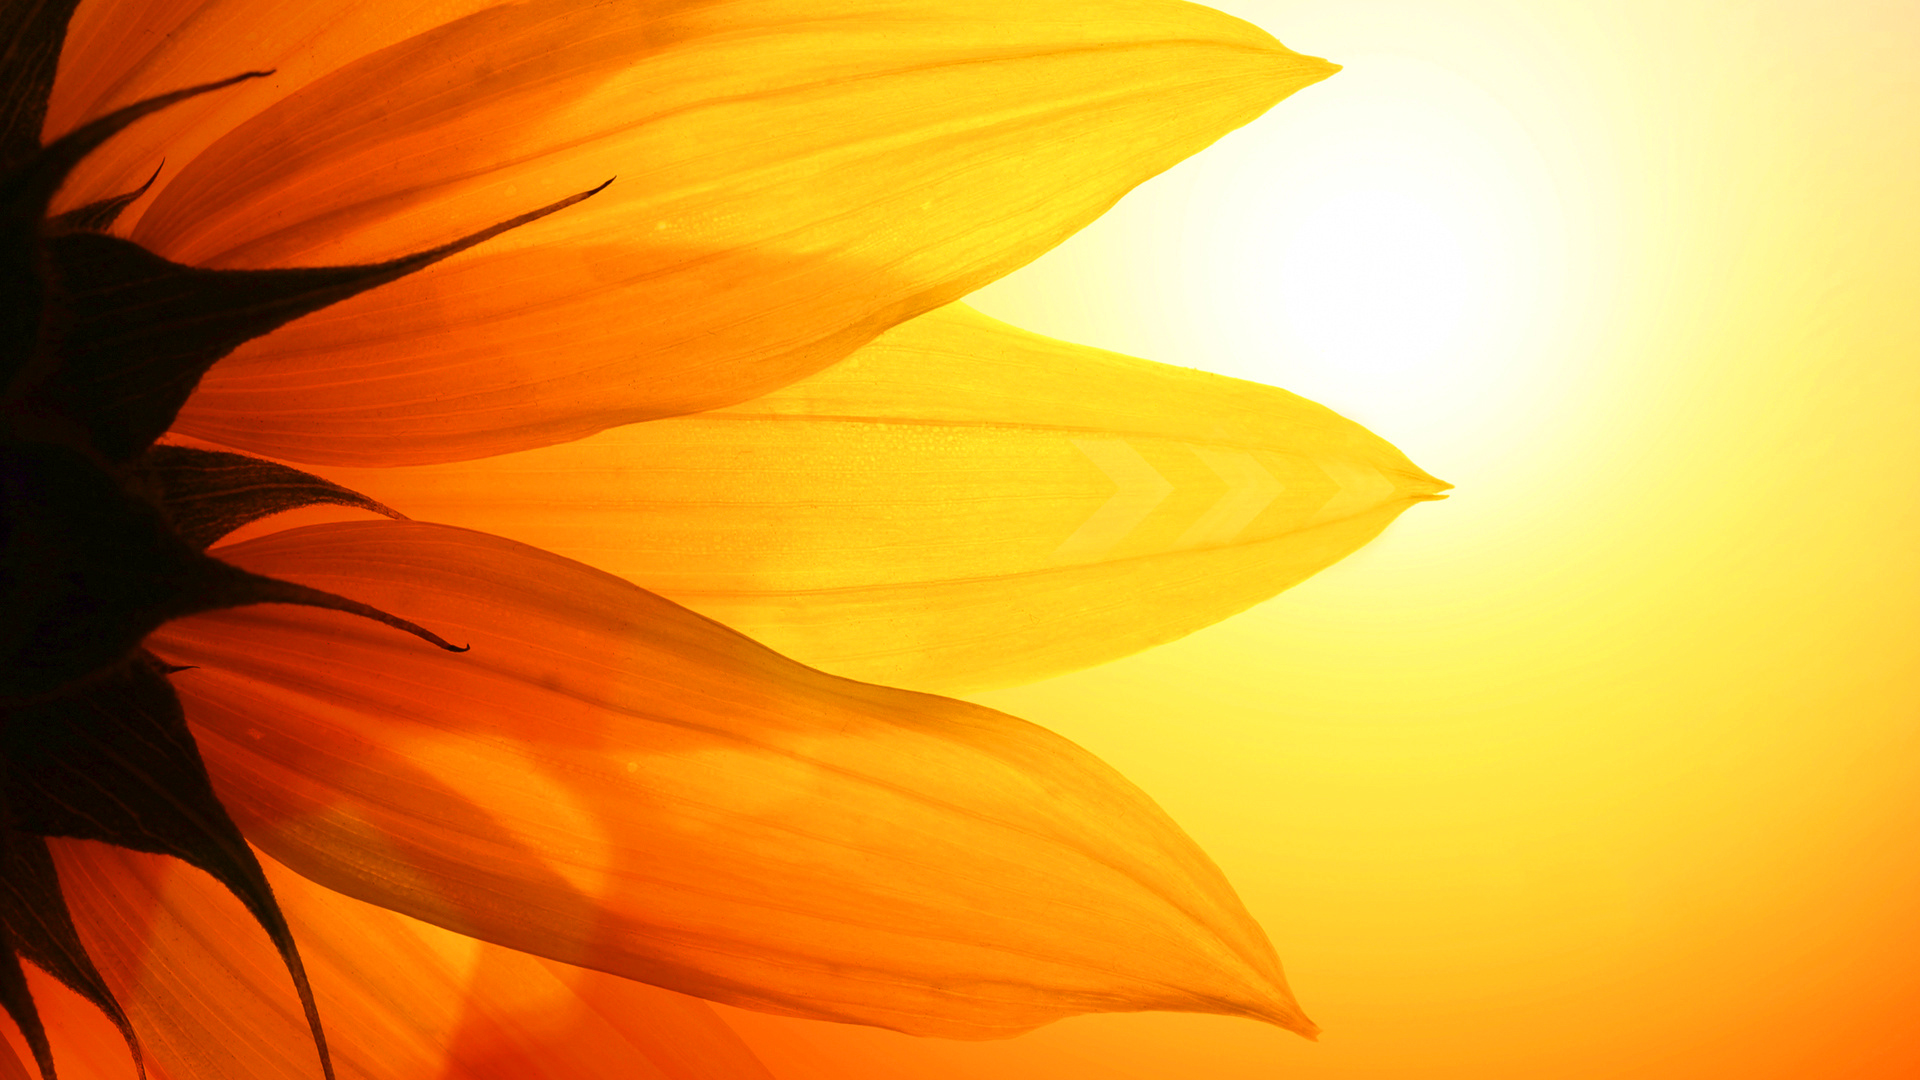 sunflower pictures 26850